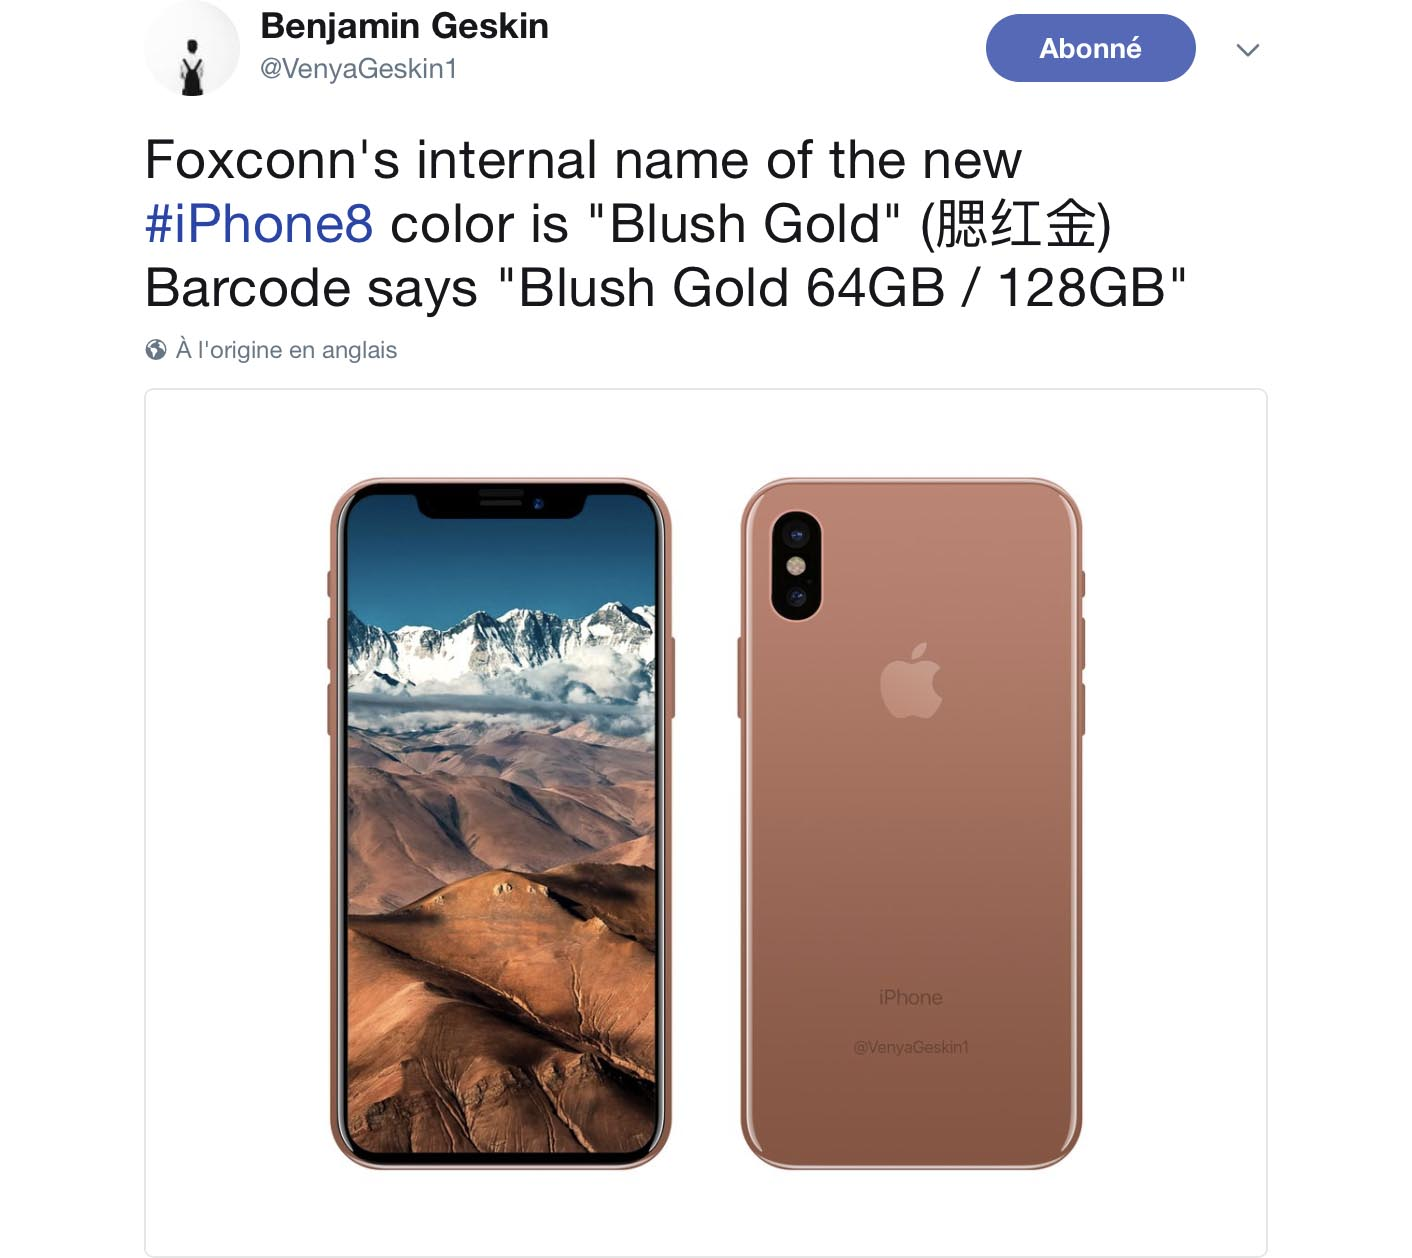 iPhone 8 Blush Gold